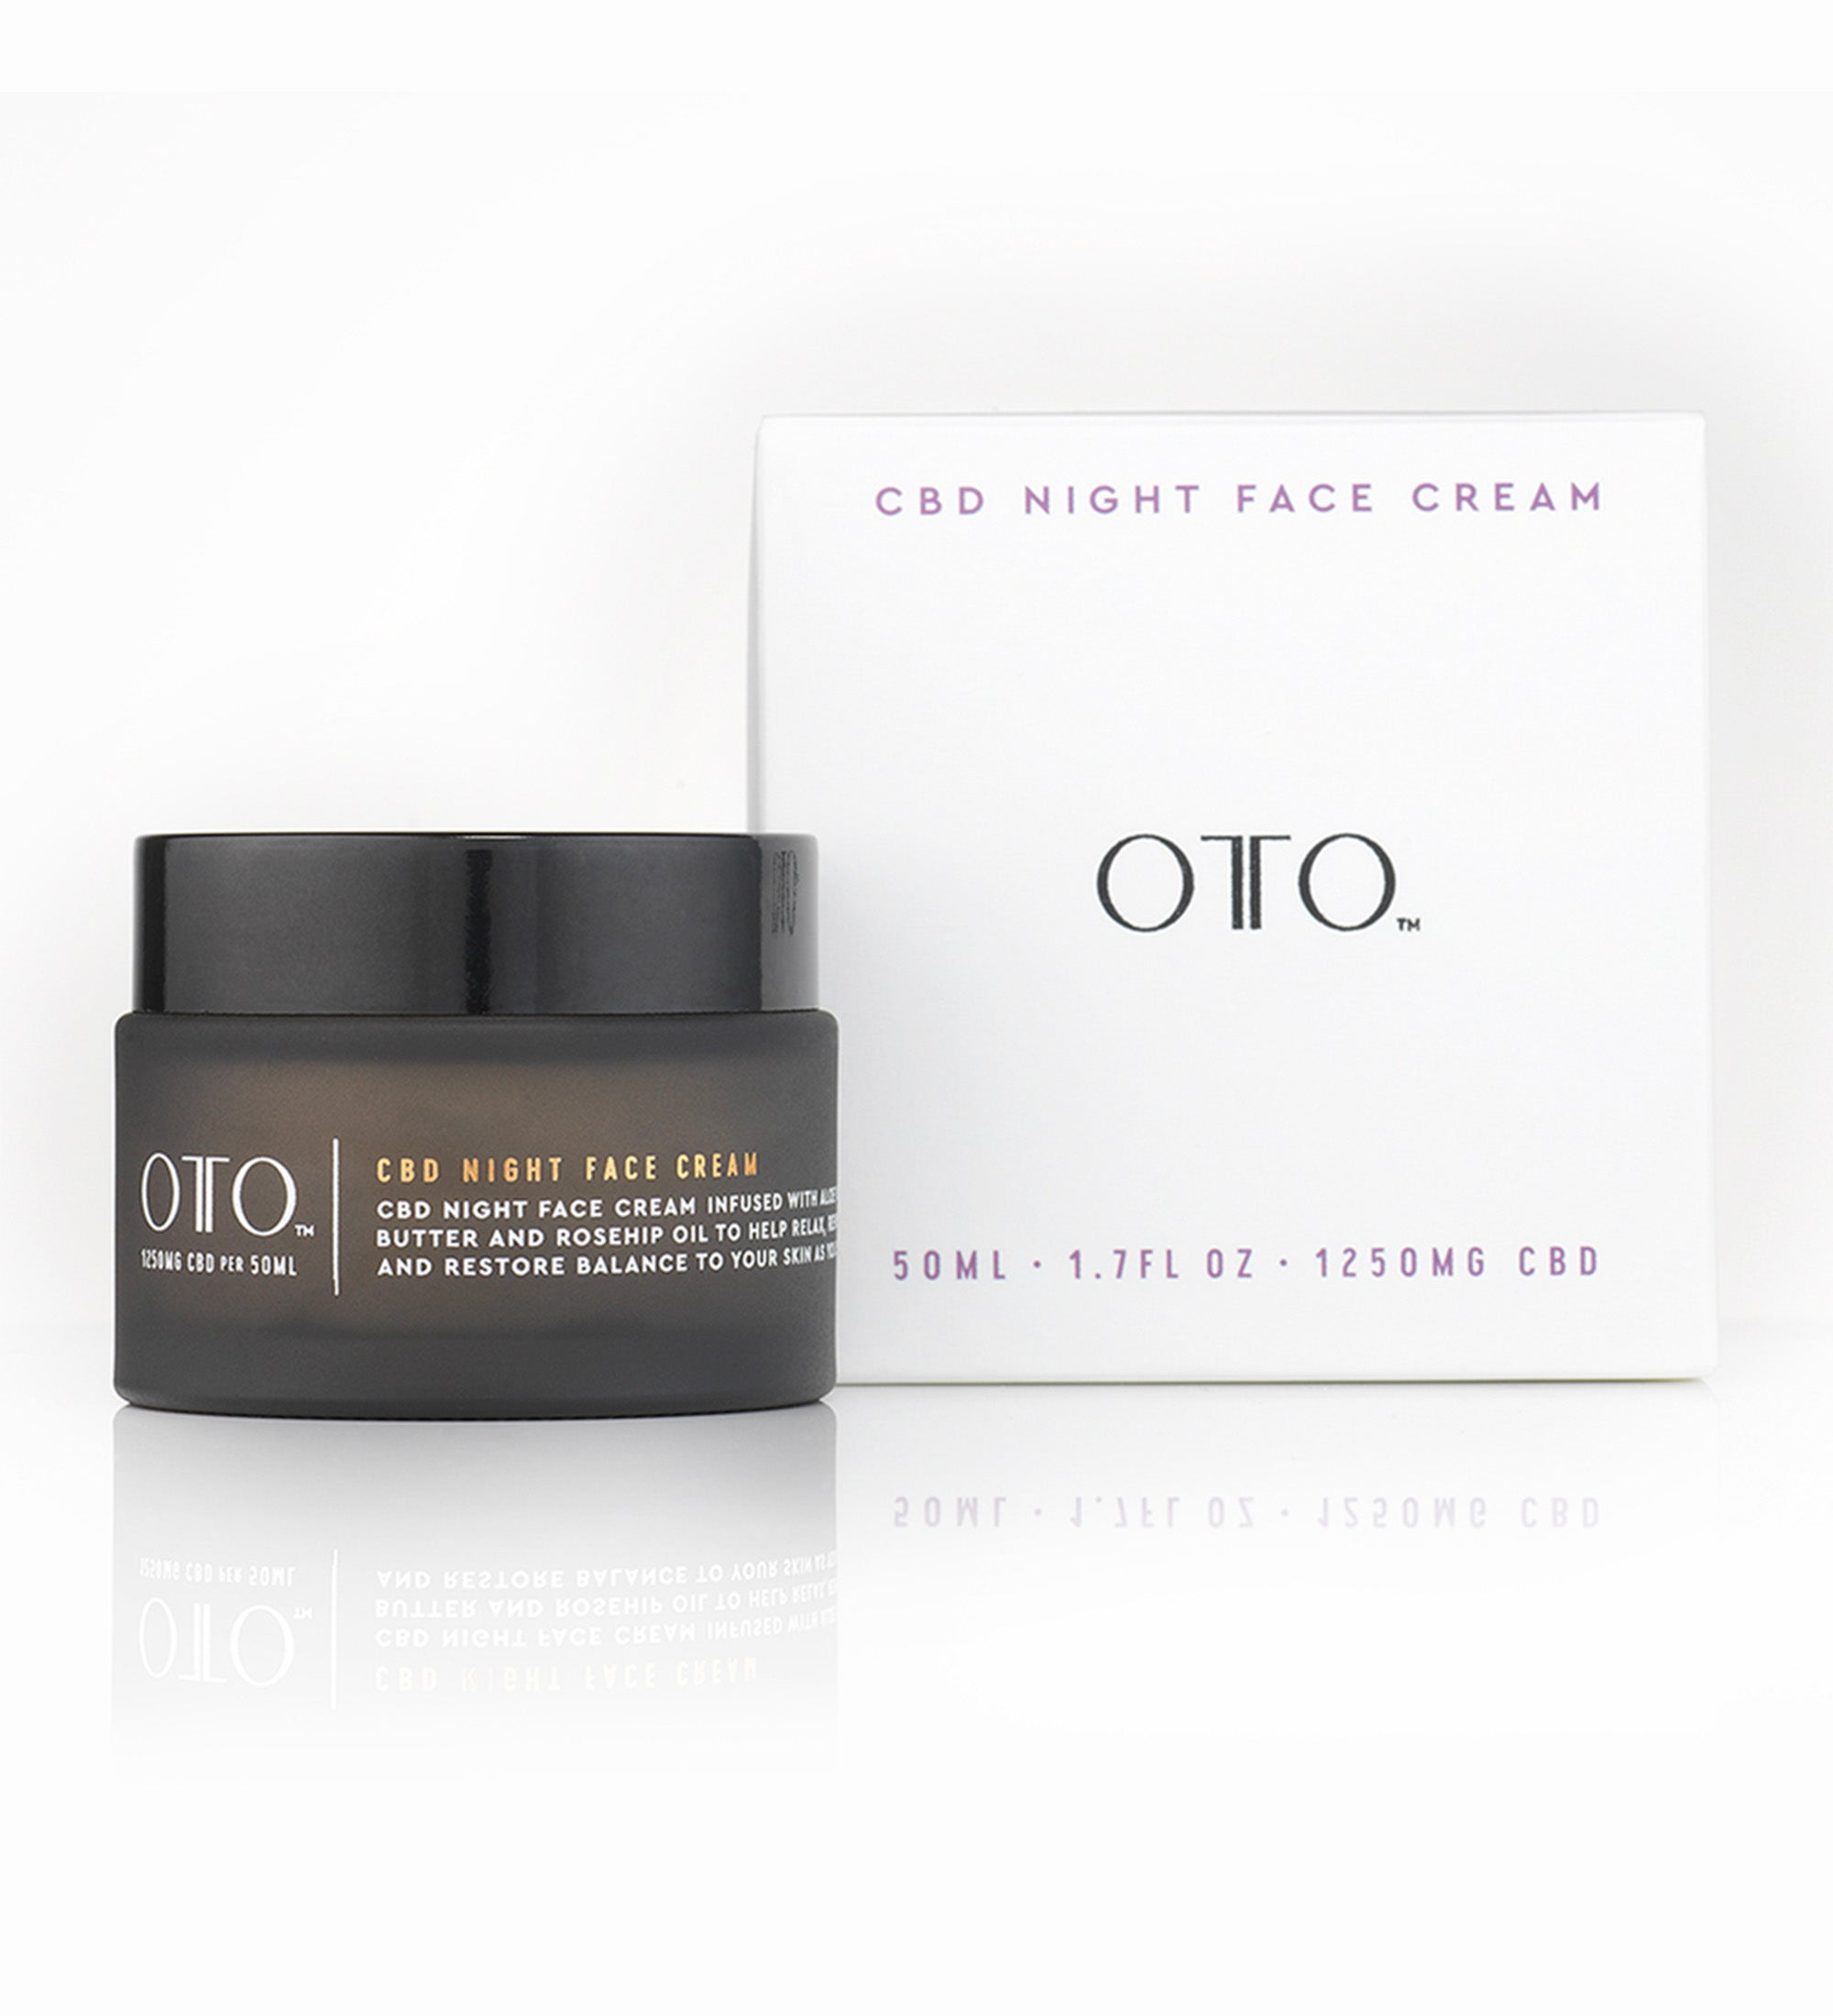 OTO Night Face Cream